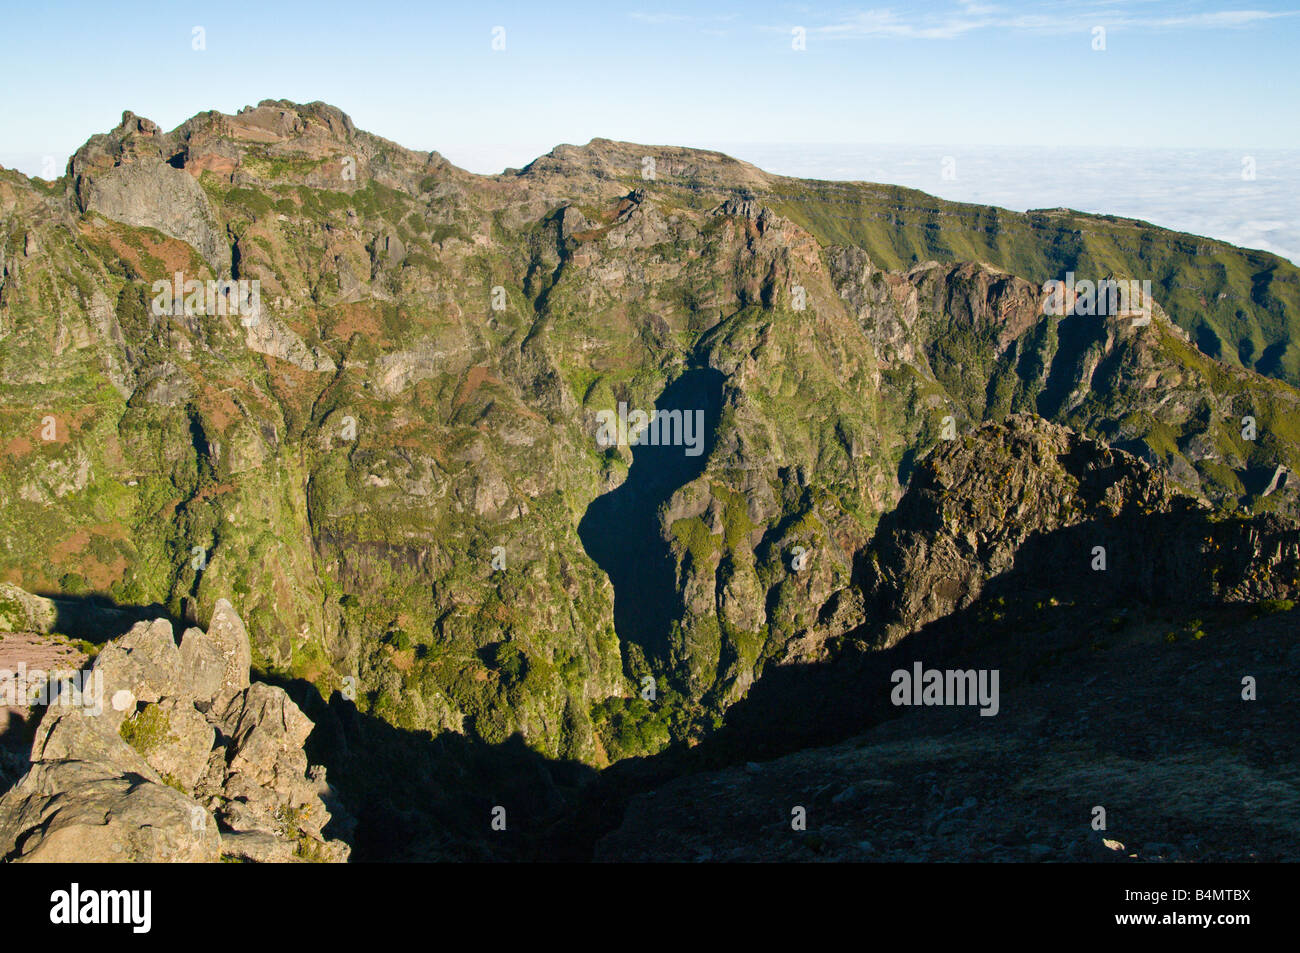 View from Pico do Areeiro Madeira towards Pico das Torres and distant Pico Ruivo the island s highest summit - Stock Image